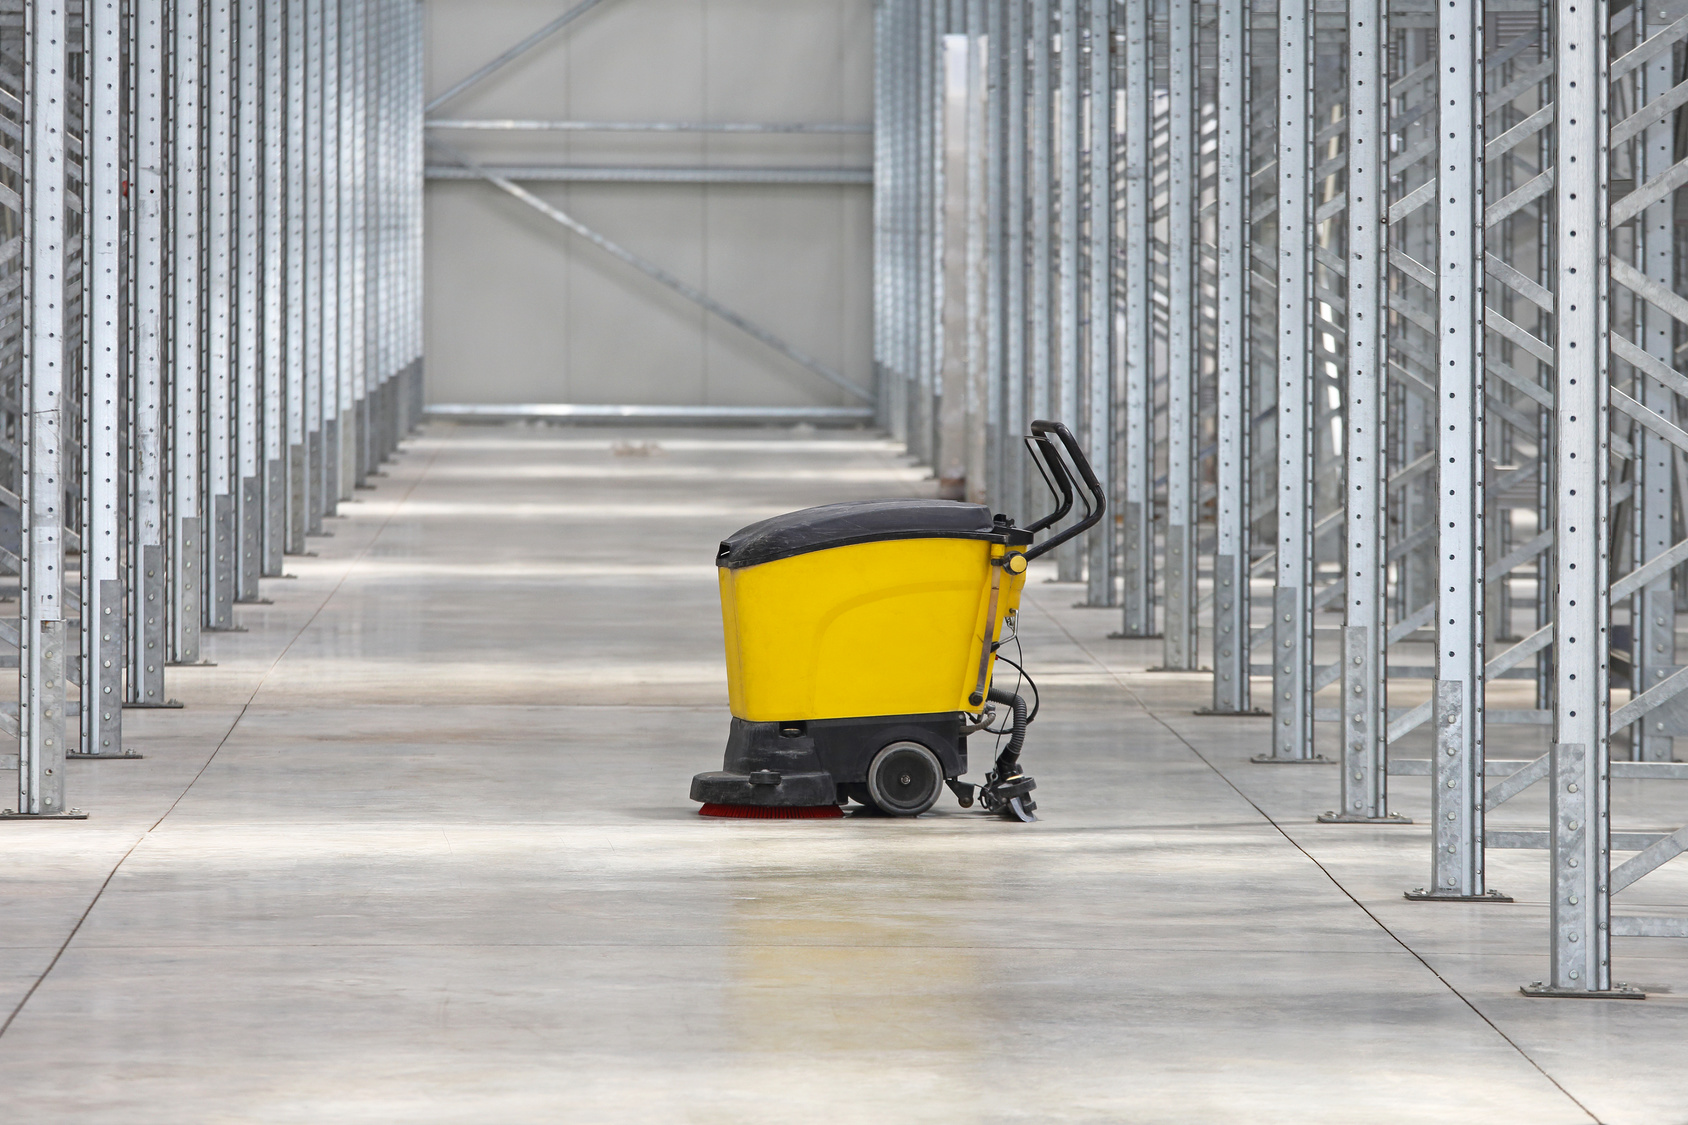 WAREHOUSE & CAR PARK CLEANING   We provide mechanical sweeping and/or scrubbing of warehouse floors or car parks.